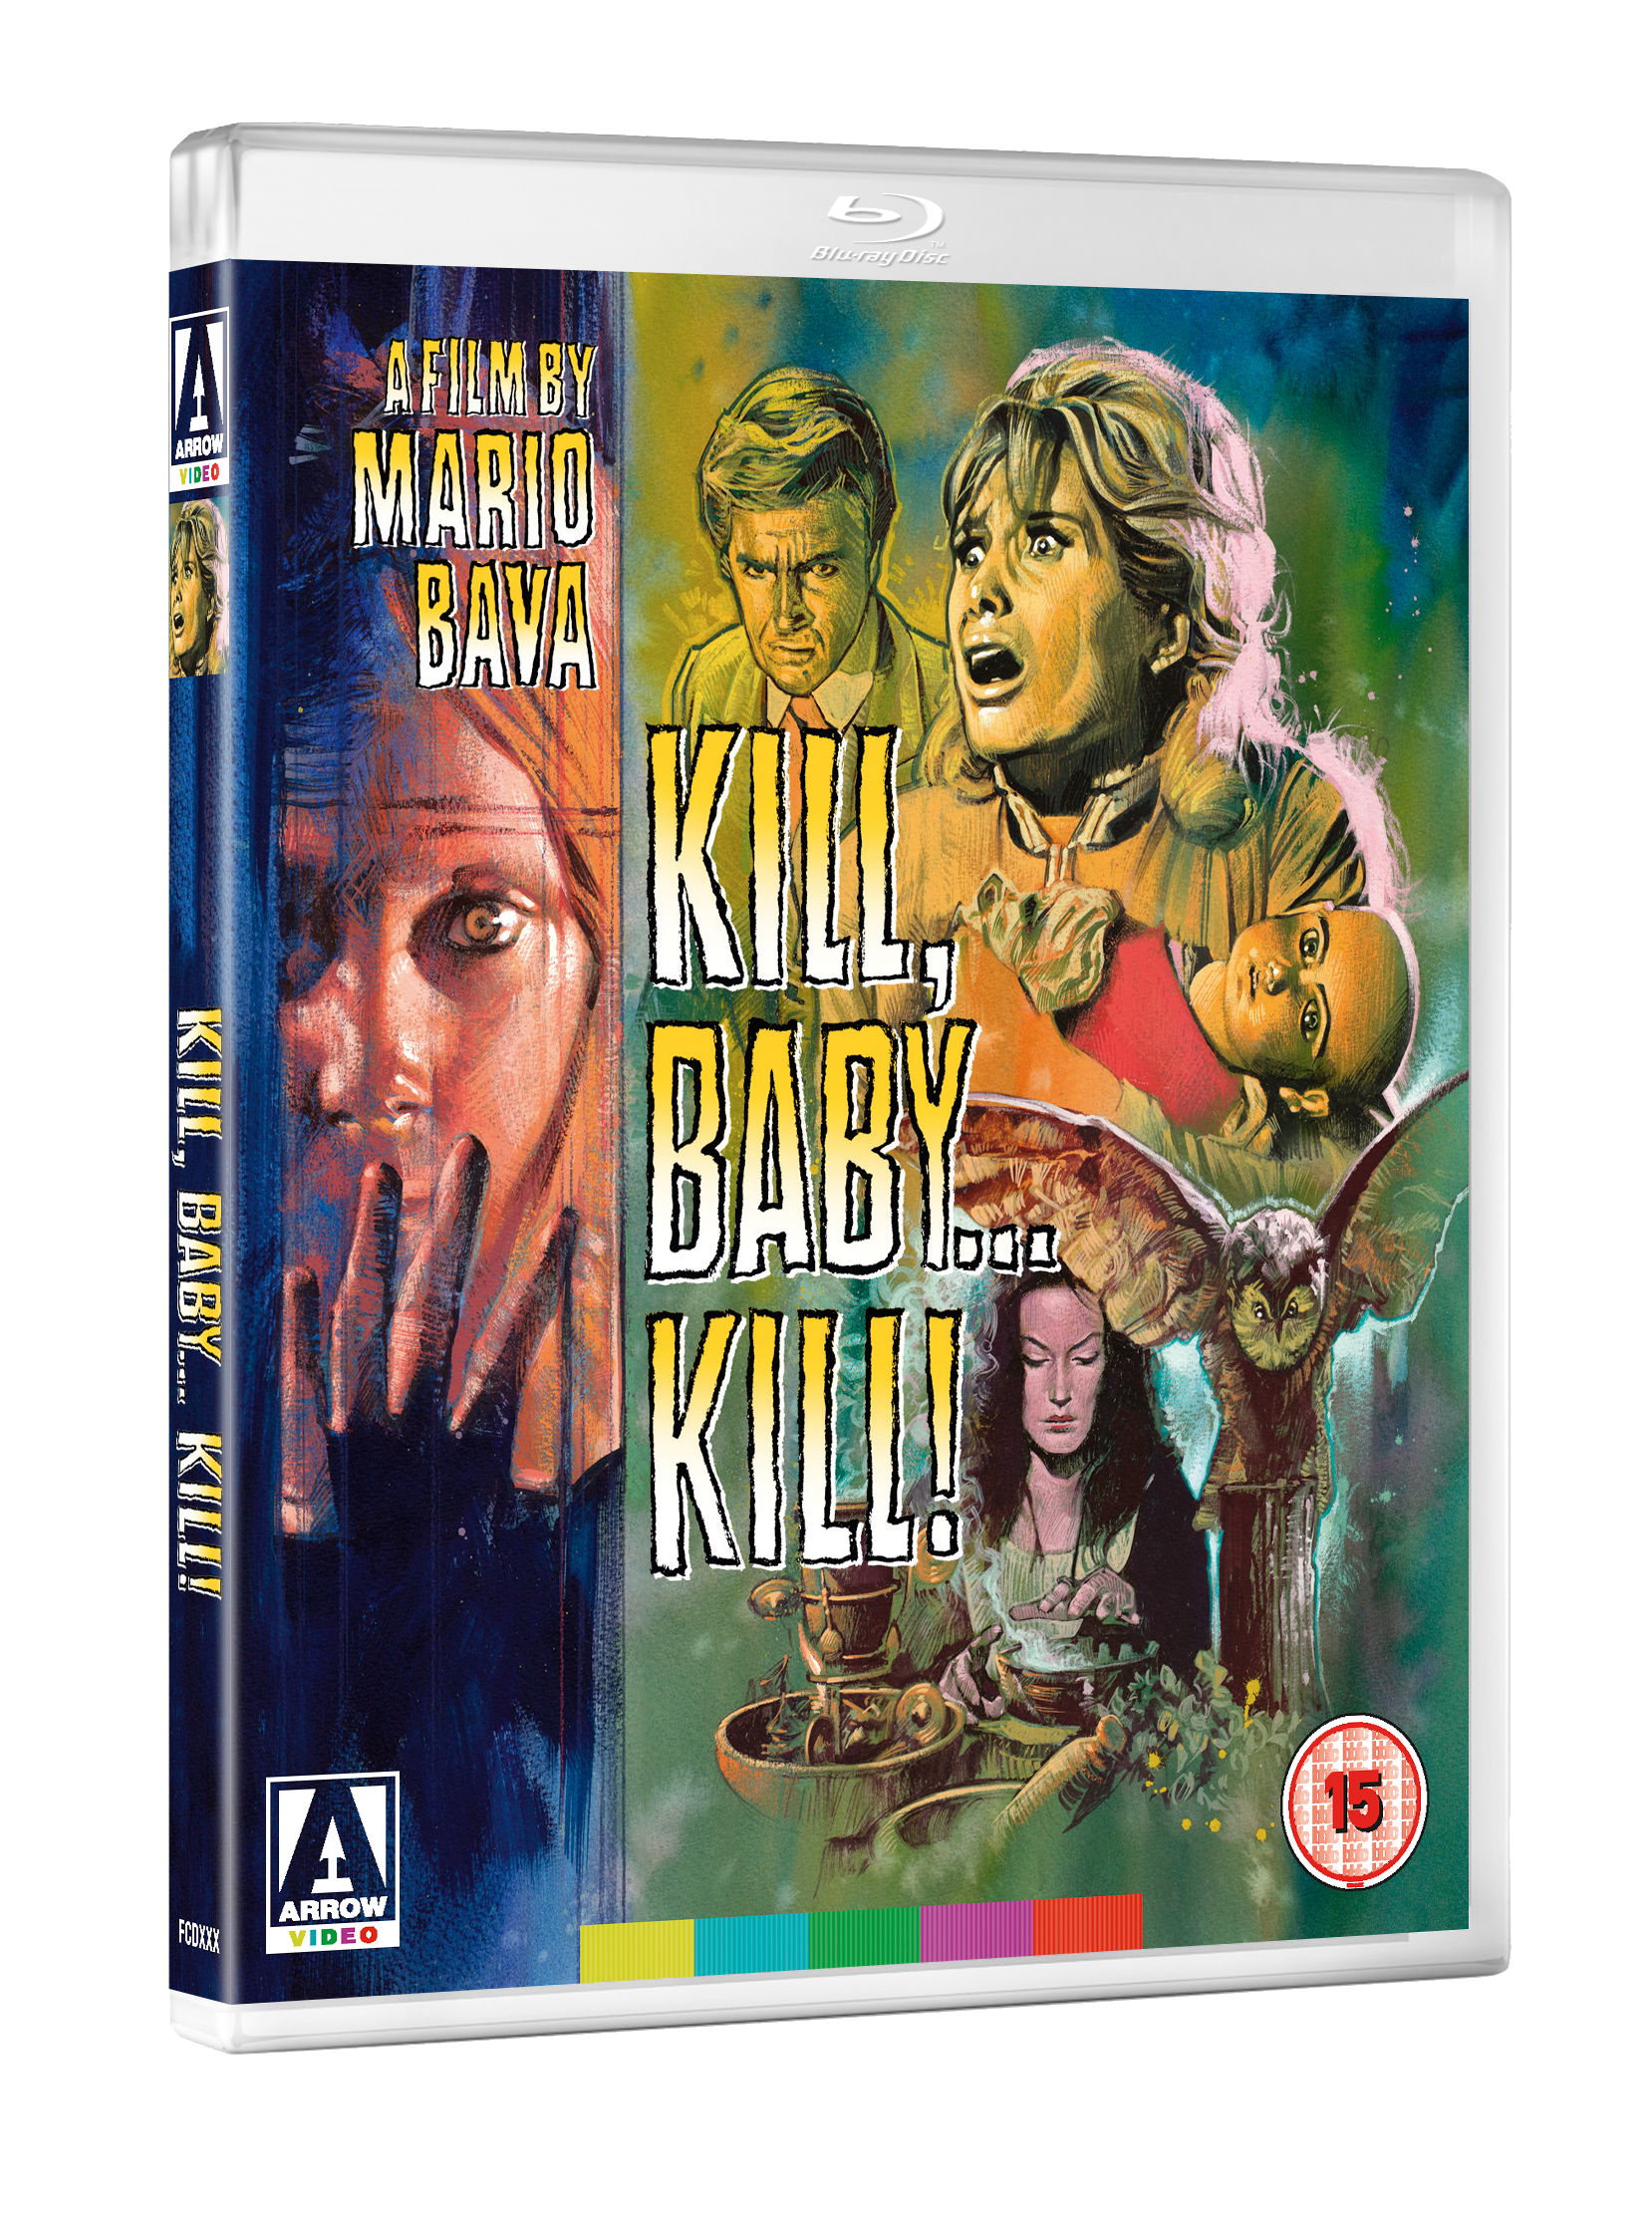 KILL BABY KILL 3D BD September 2017 line up announced by Arrow Video